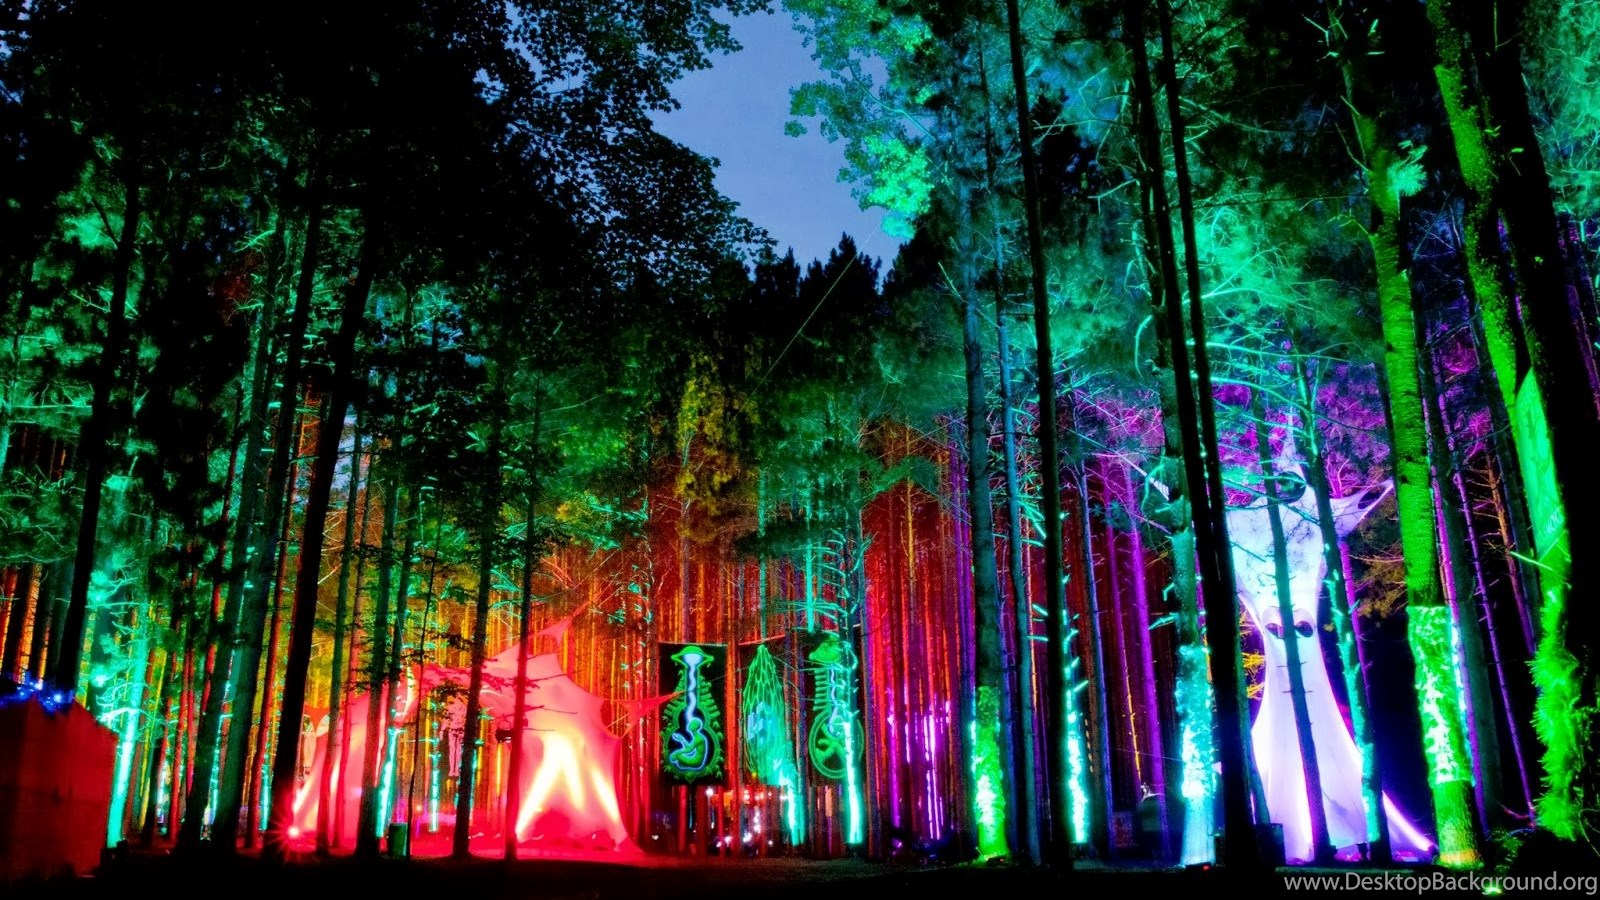 Electric Forest Hd Wallpapers Deep Hd Wallpapers For You Desktop Background